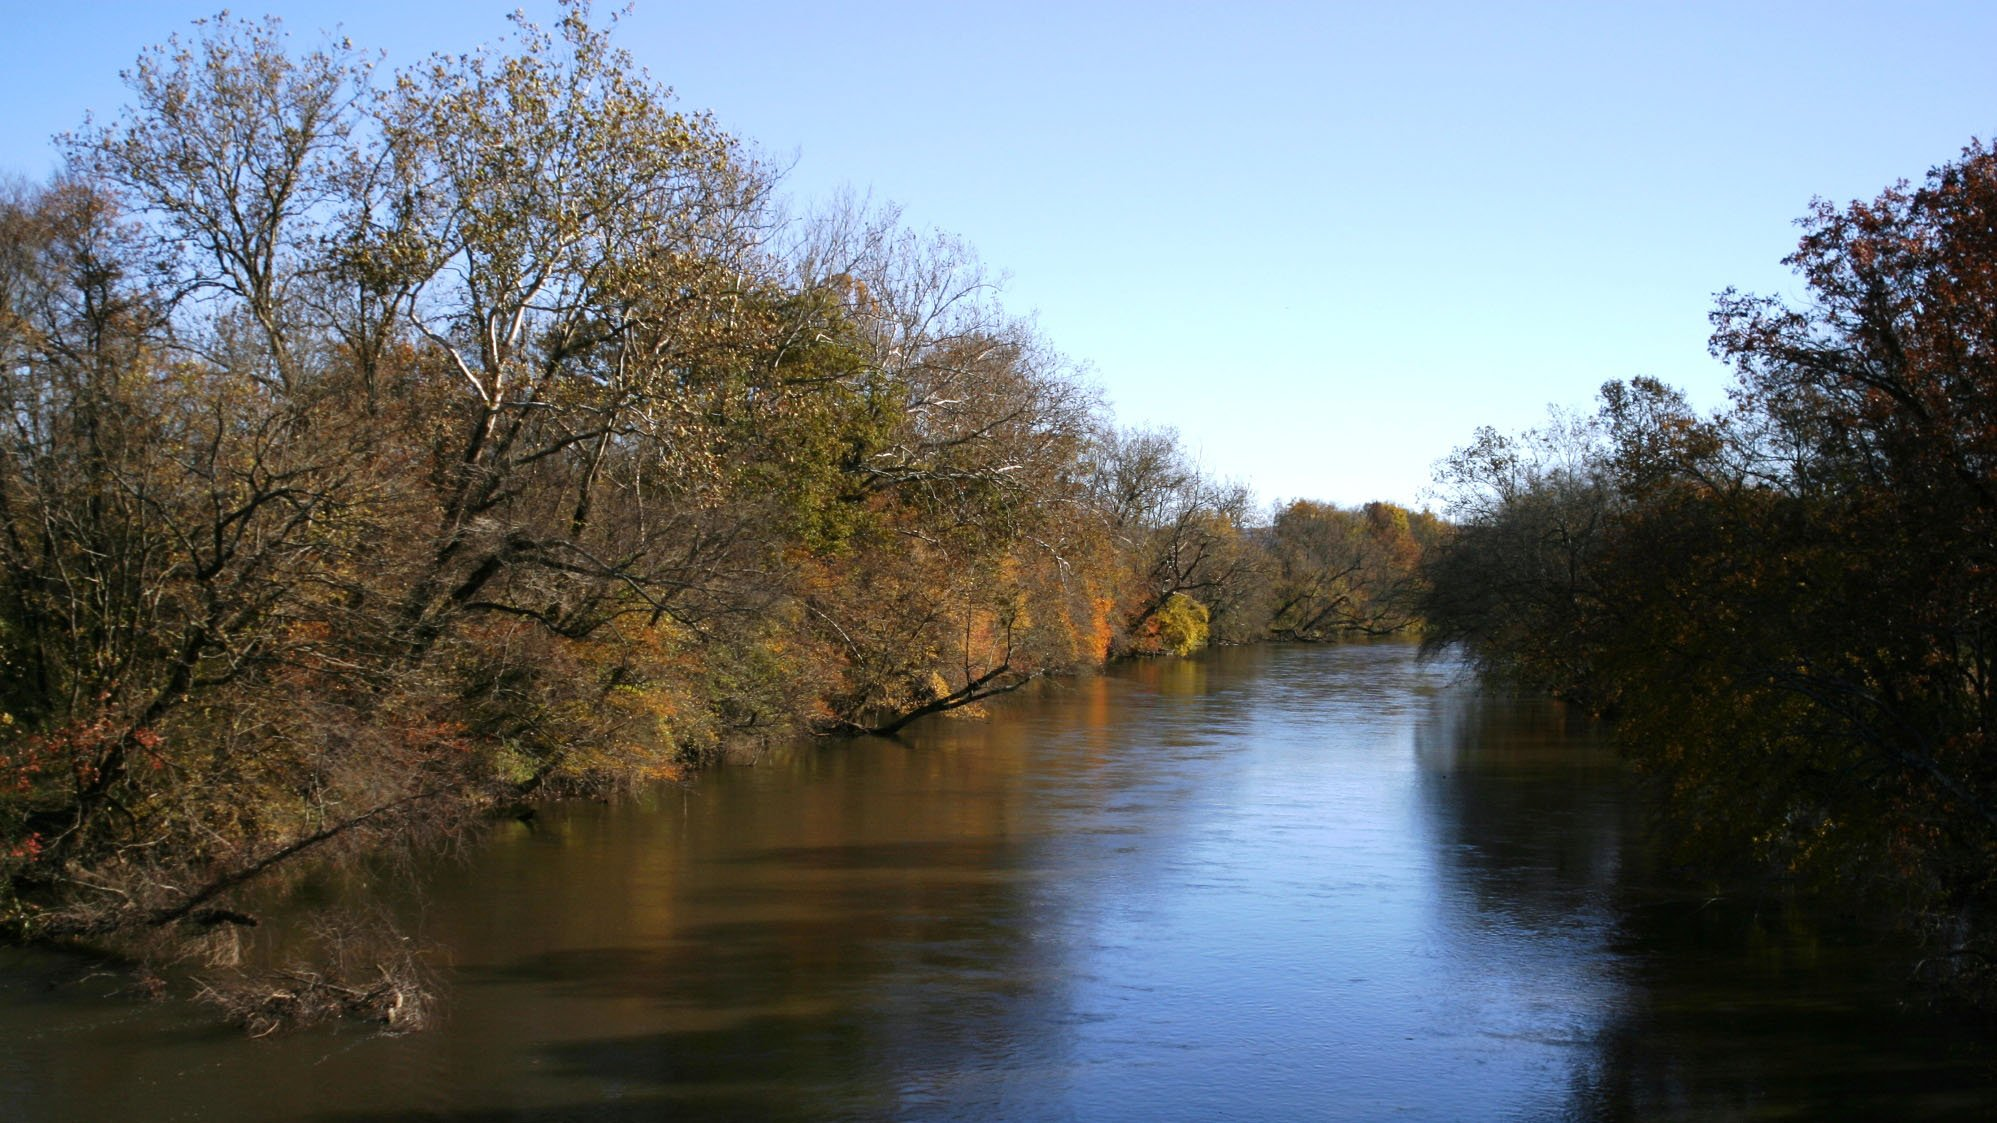 French Broad River (Source: Wikimedia Commons)